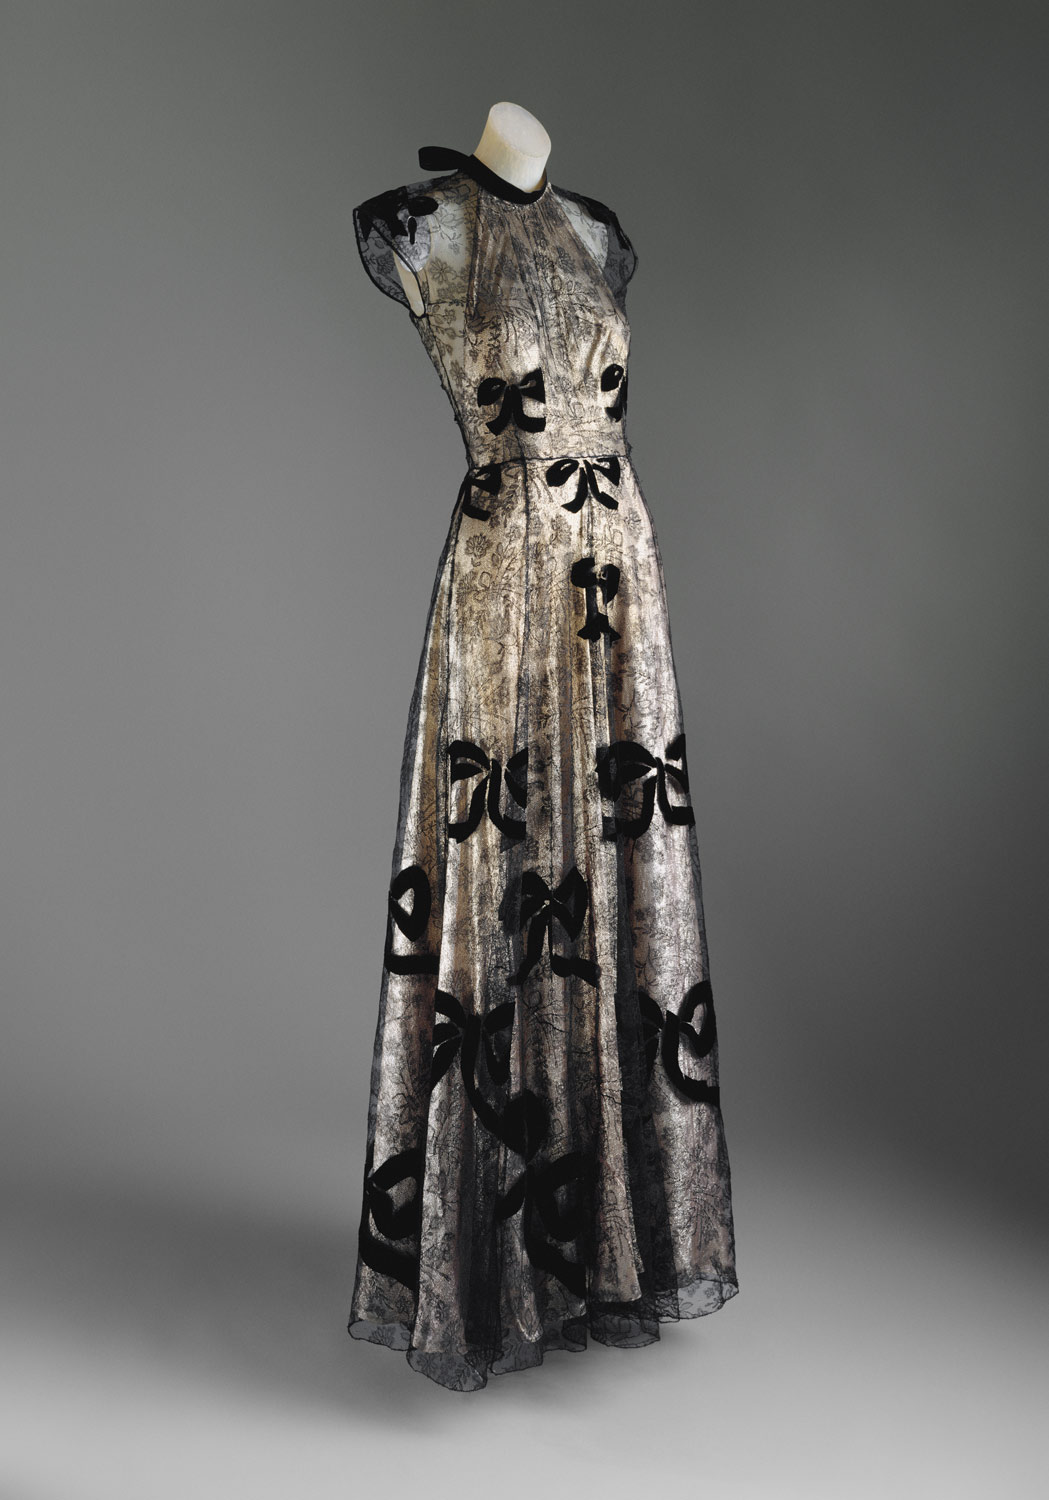 Evening dress | Madeleine Vionnet | C.I.52.24.2a,b | Work of Art ...